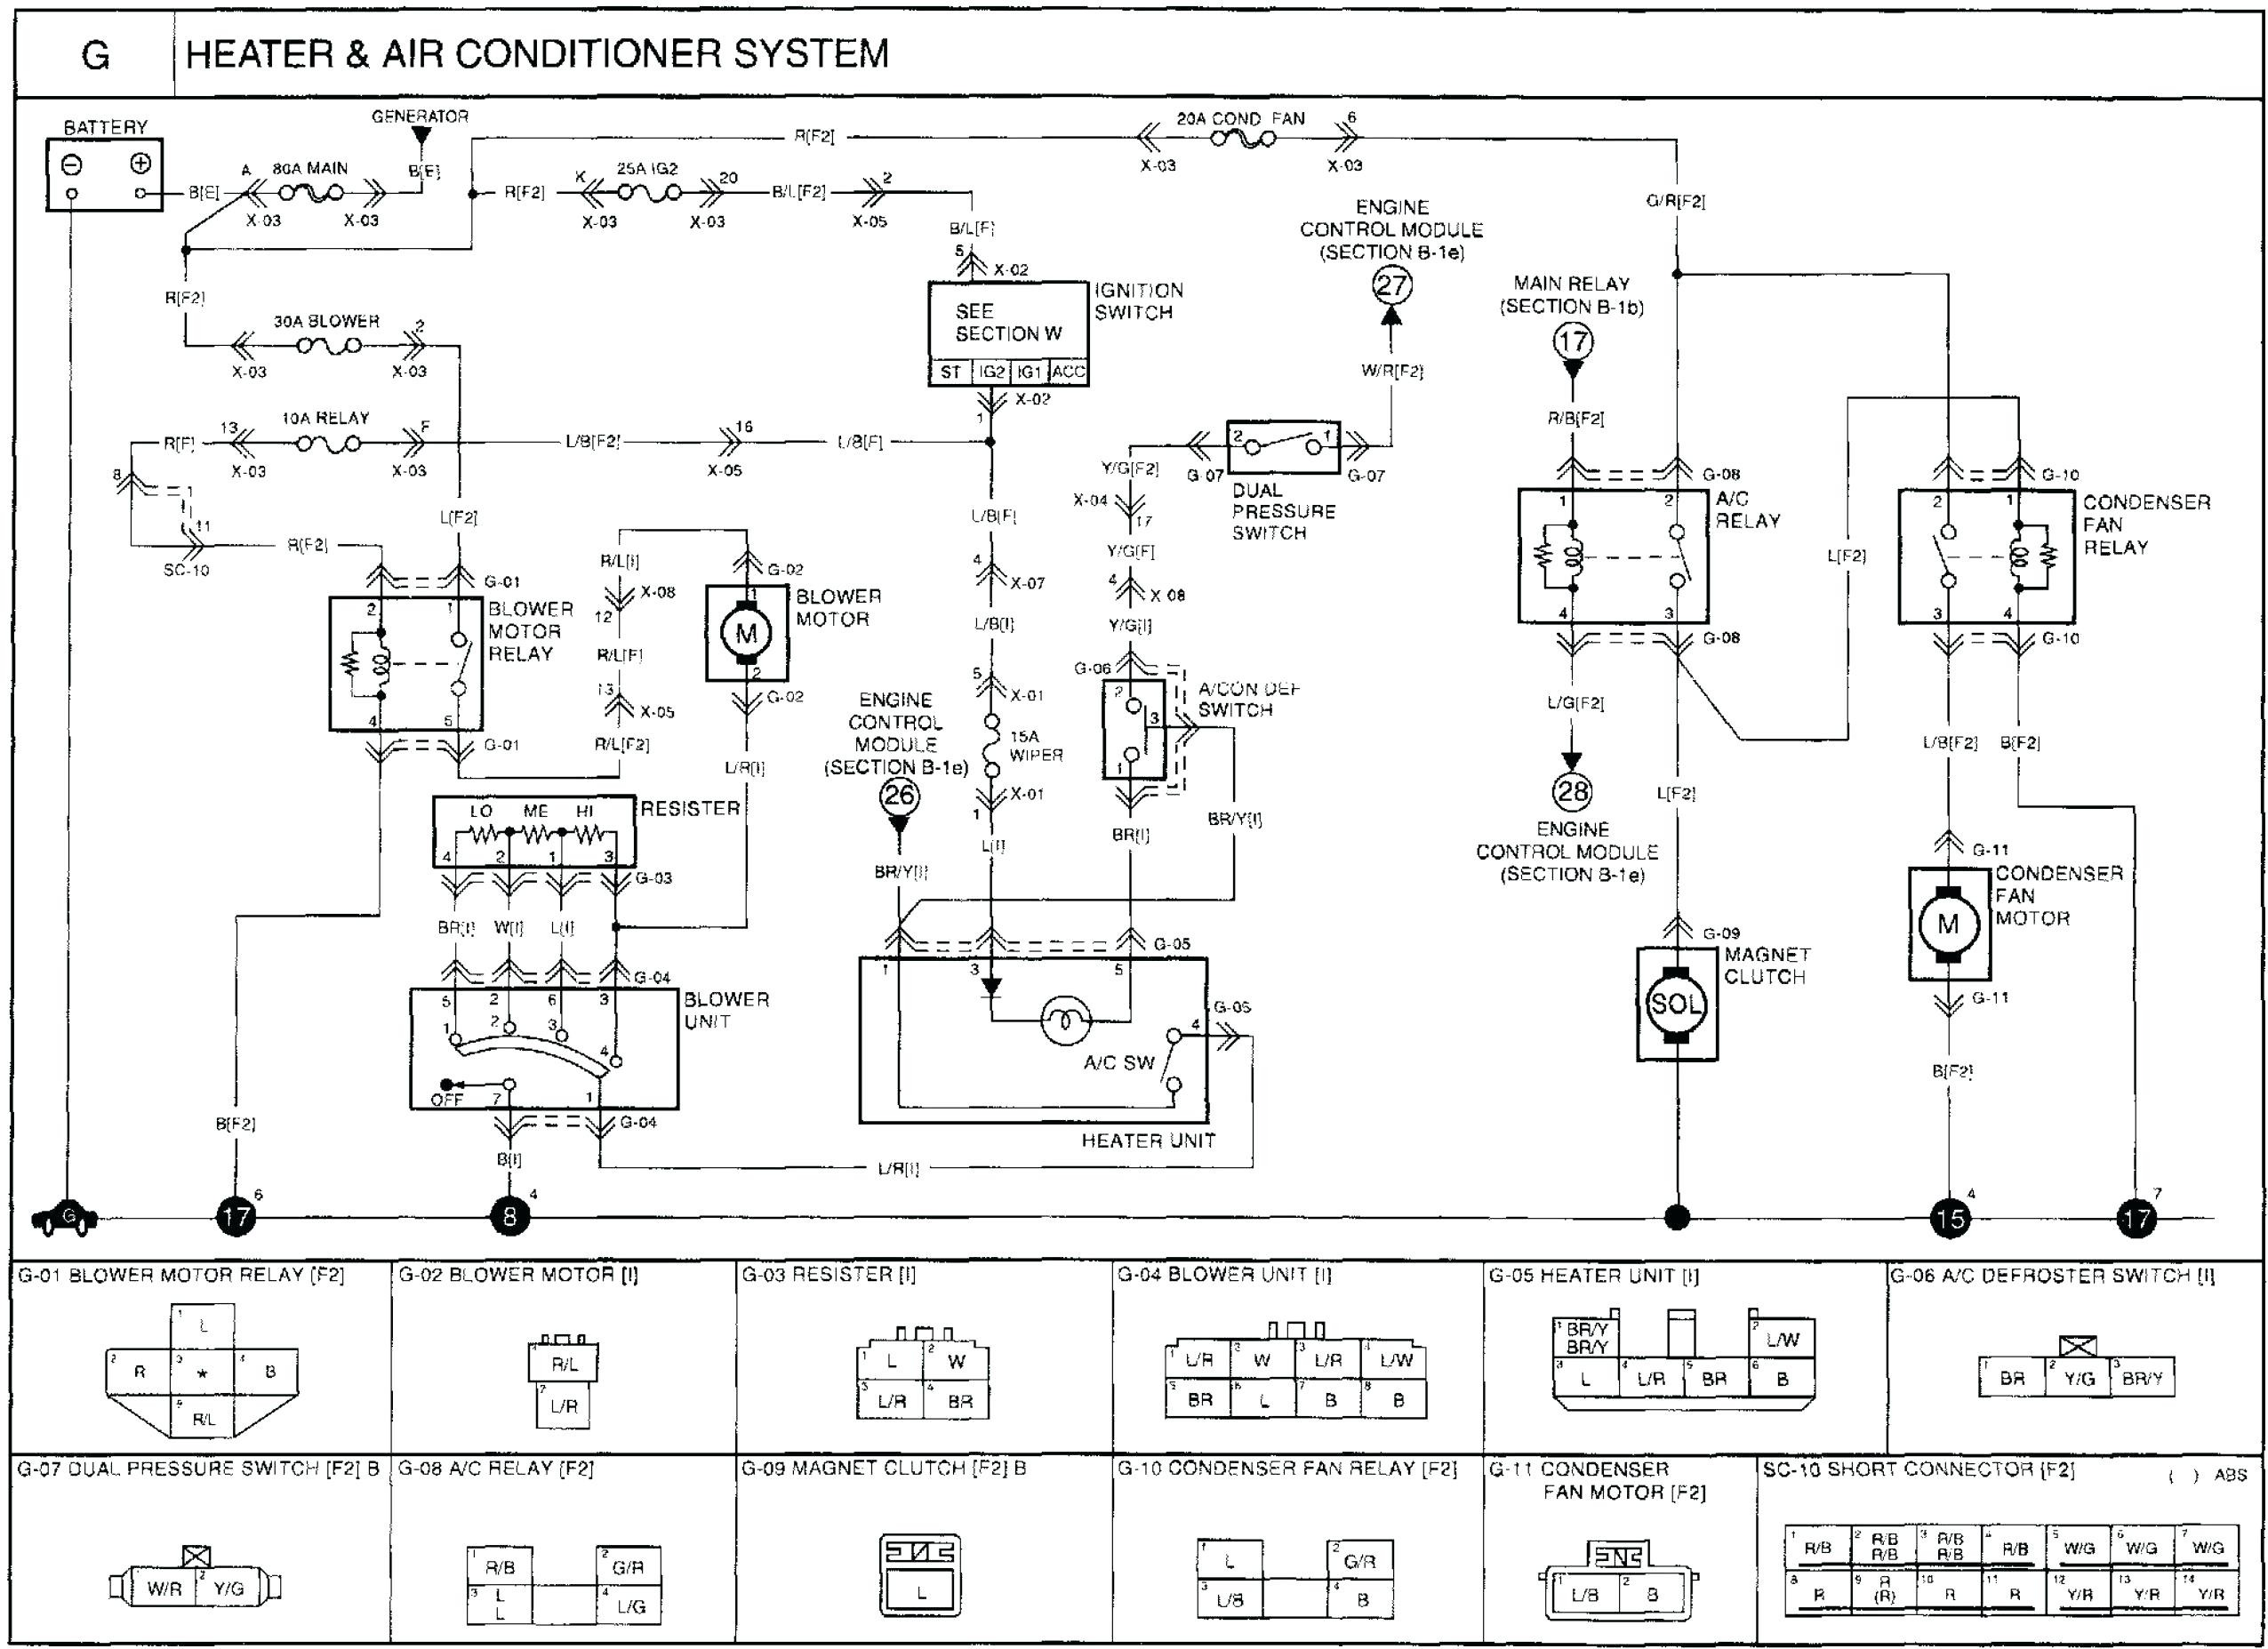 Astonishing 2006 Kia Optima Engine Diagram 2005 Kia Fuel System Wiring Diagram Wiring Cloud Favobieswglorg